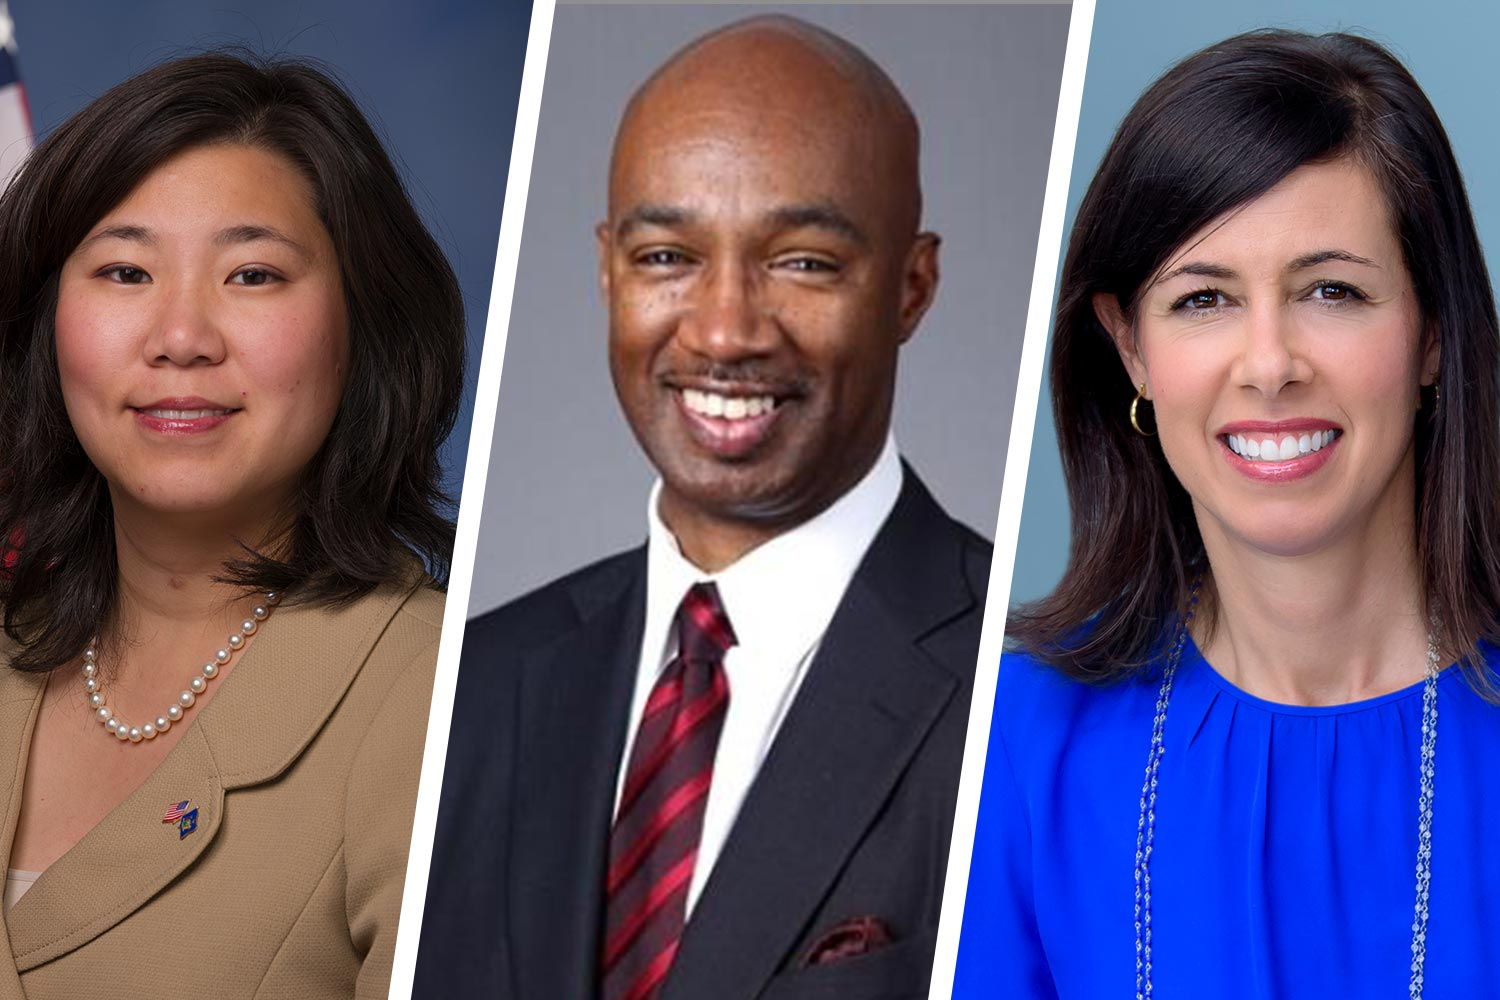 """Grace Meng, Larry Irving and Jessica Rosenworcel, experts on the """"digital divide,"""" spoke Thursday on a panel moderated by UVA President Jim Ryan. (Contributed photos)"""